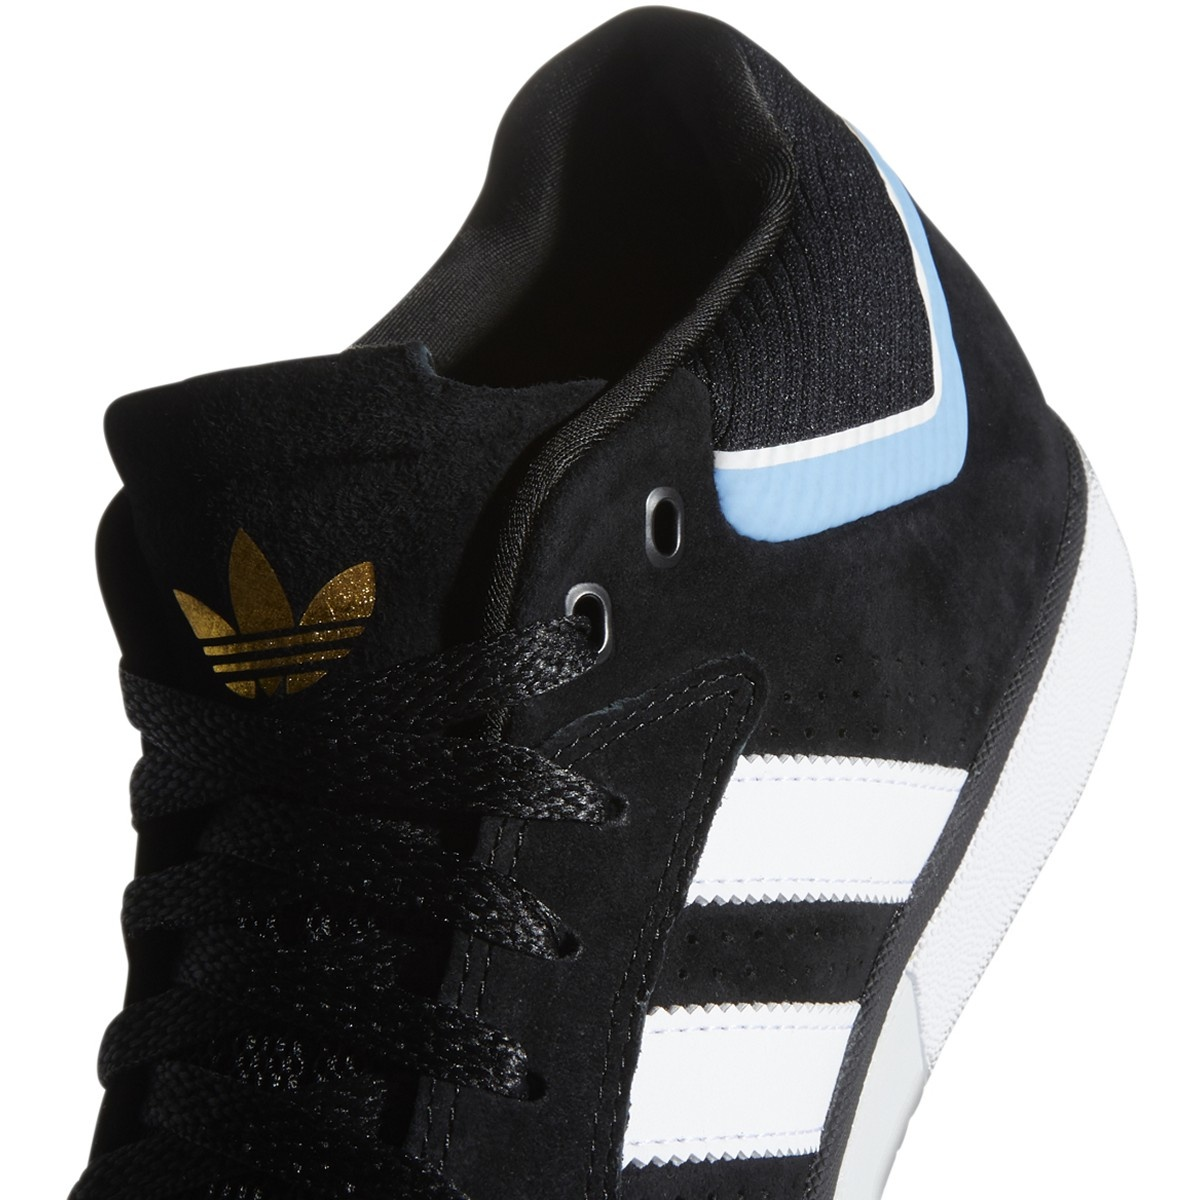 Adidas Adidas Tyshawn - Core Black/White/Light Blue